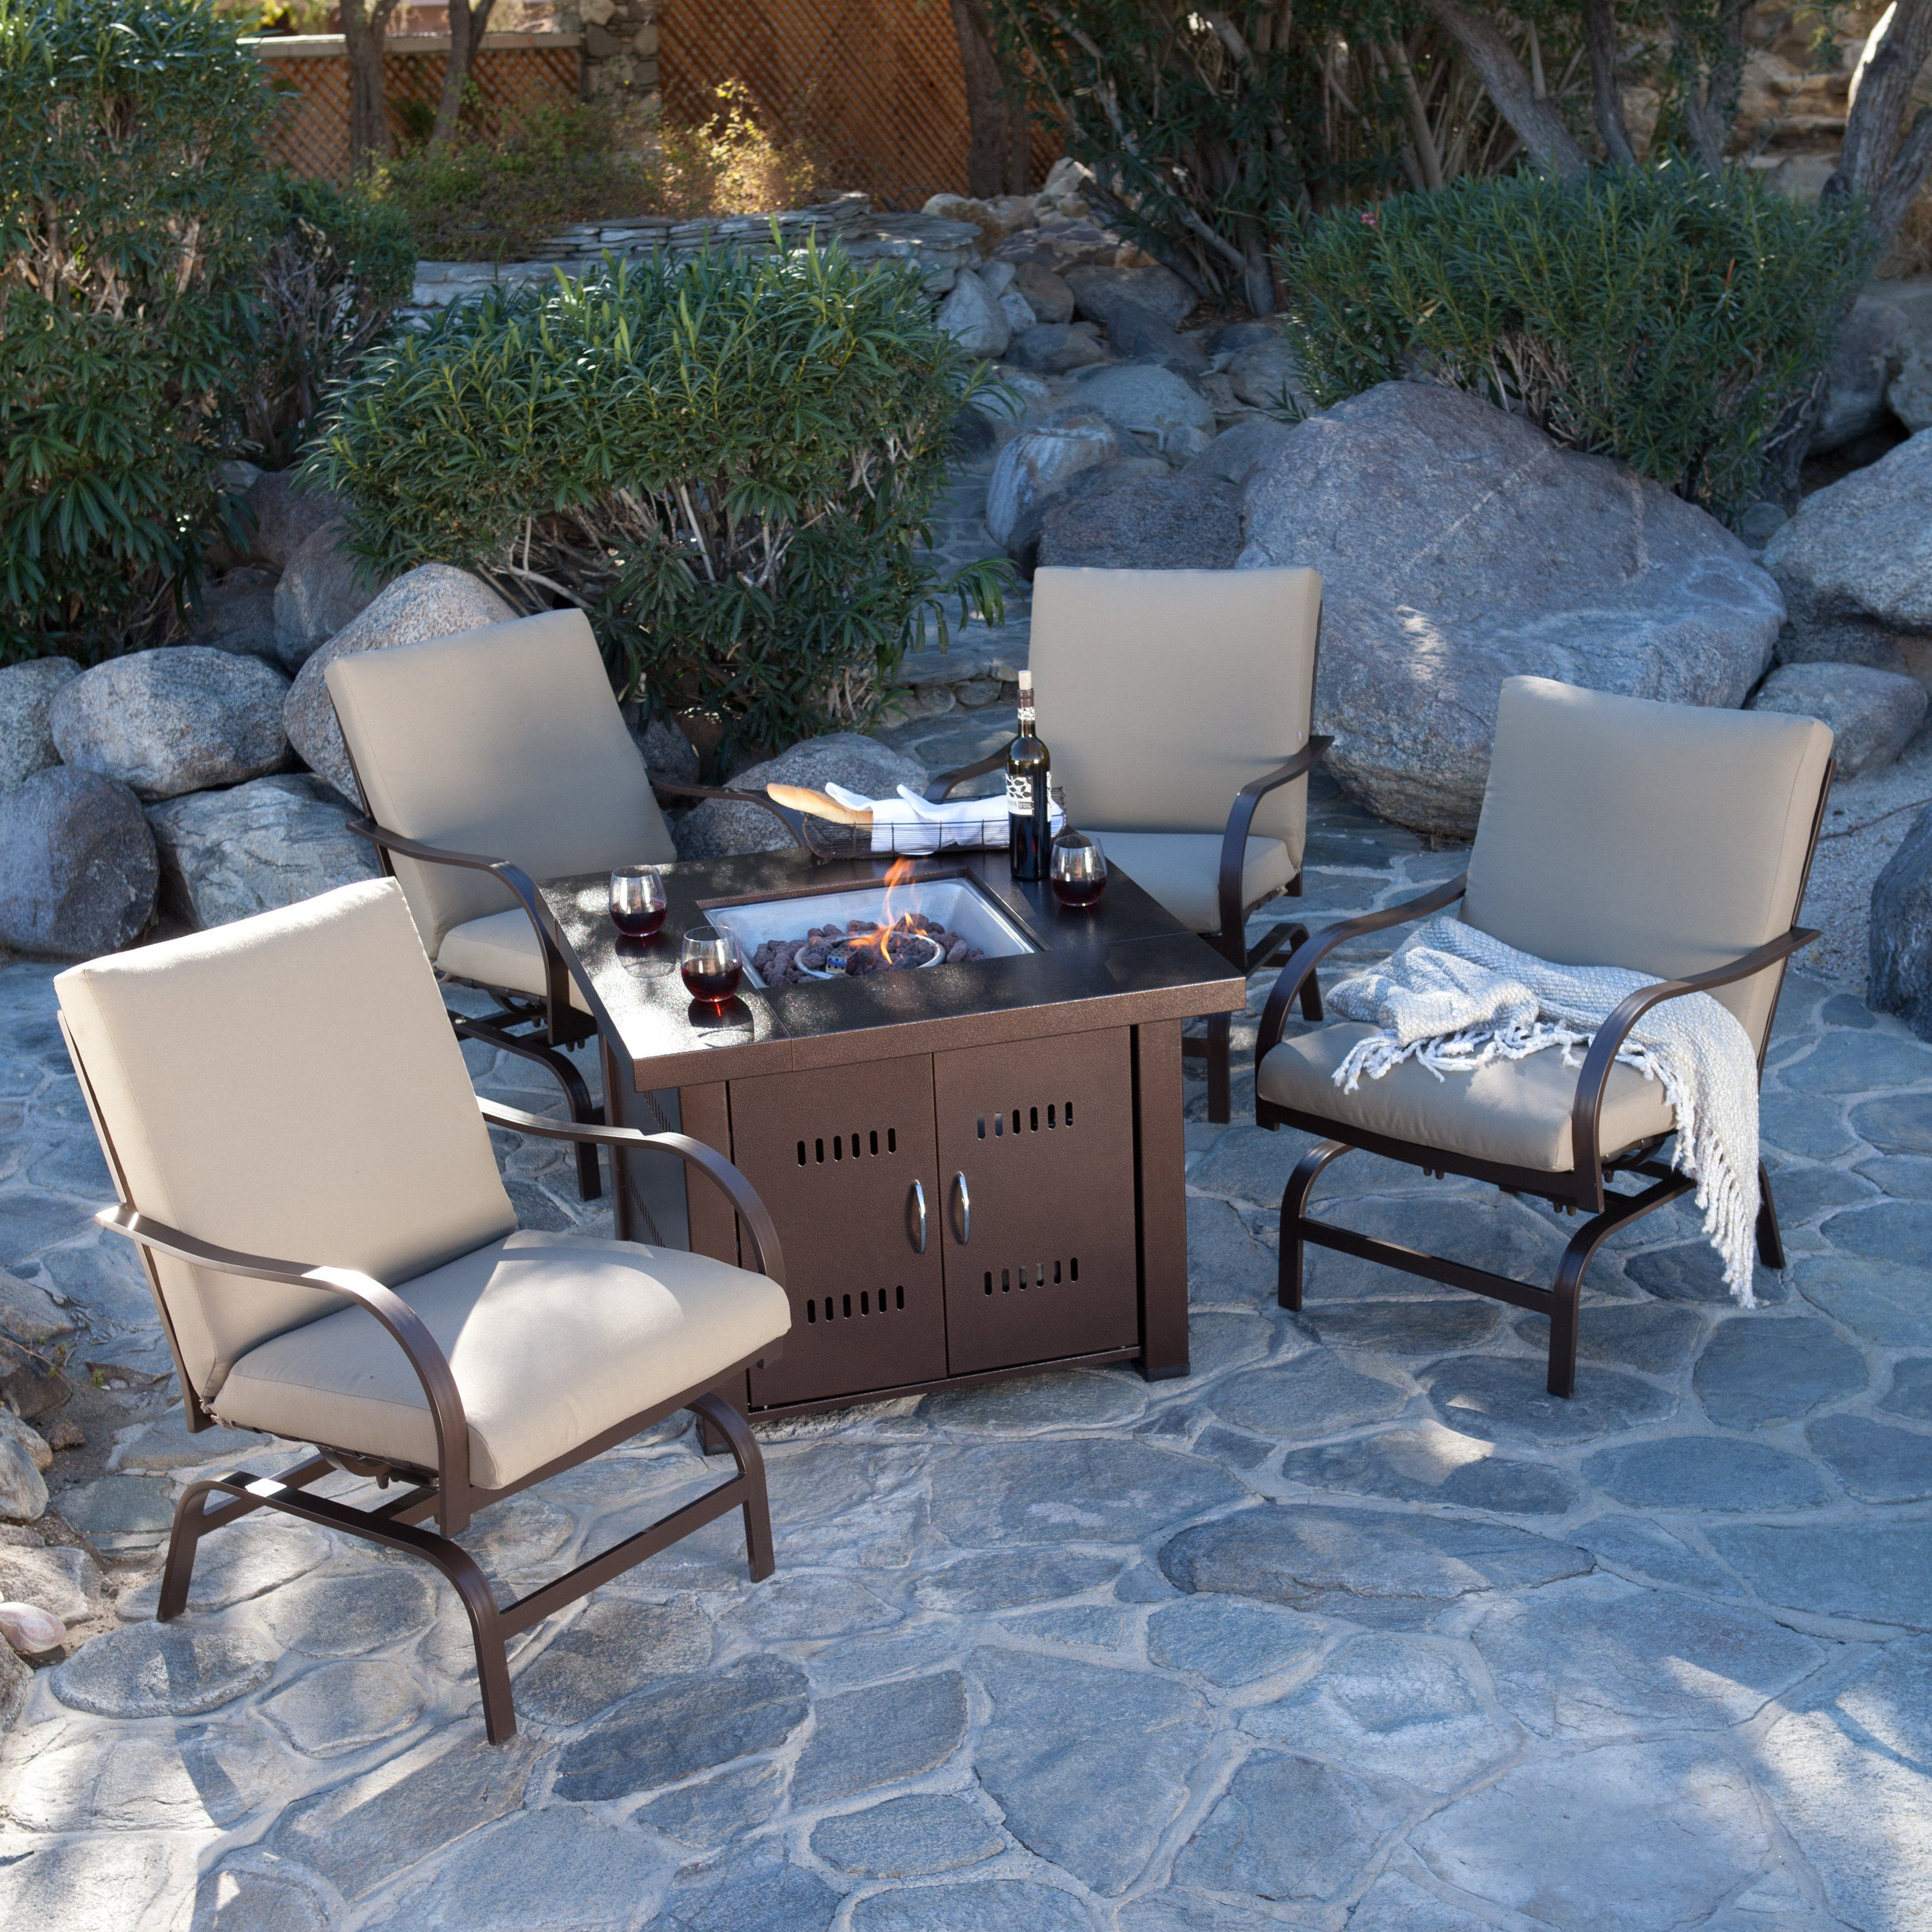 ... Propane Antique Bronze Fire Pit   The AZ Heater Propane Antique Bronze Fire  Pit Blends In Beautifully With Your Other Wooden Or Wicker Patio Furniture.